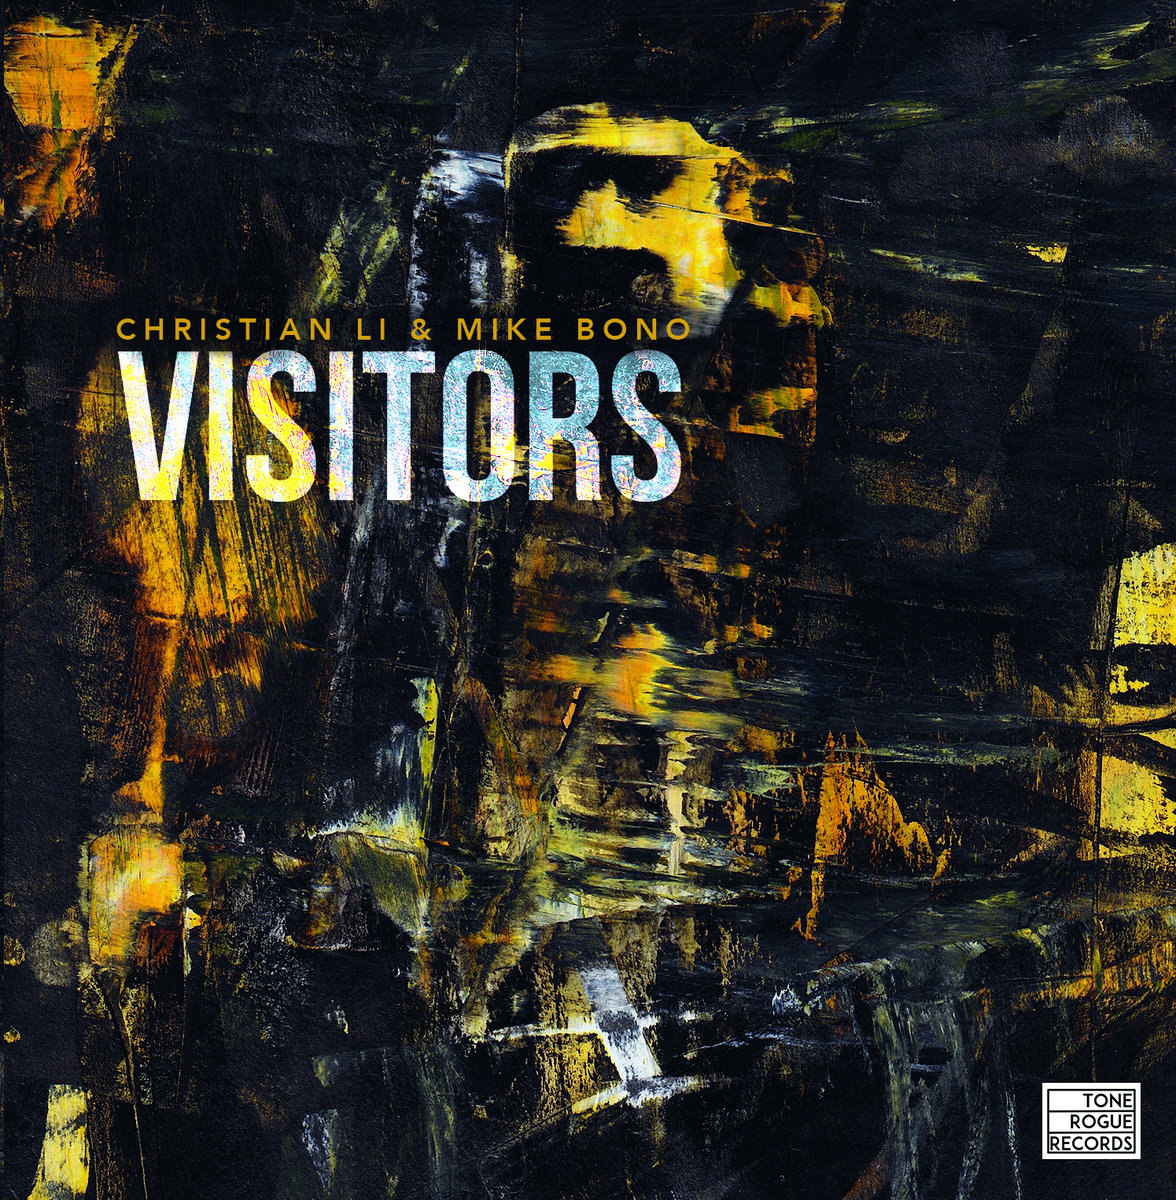 Christian Li & Mike Bono - Visitors (2019)